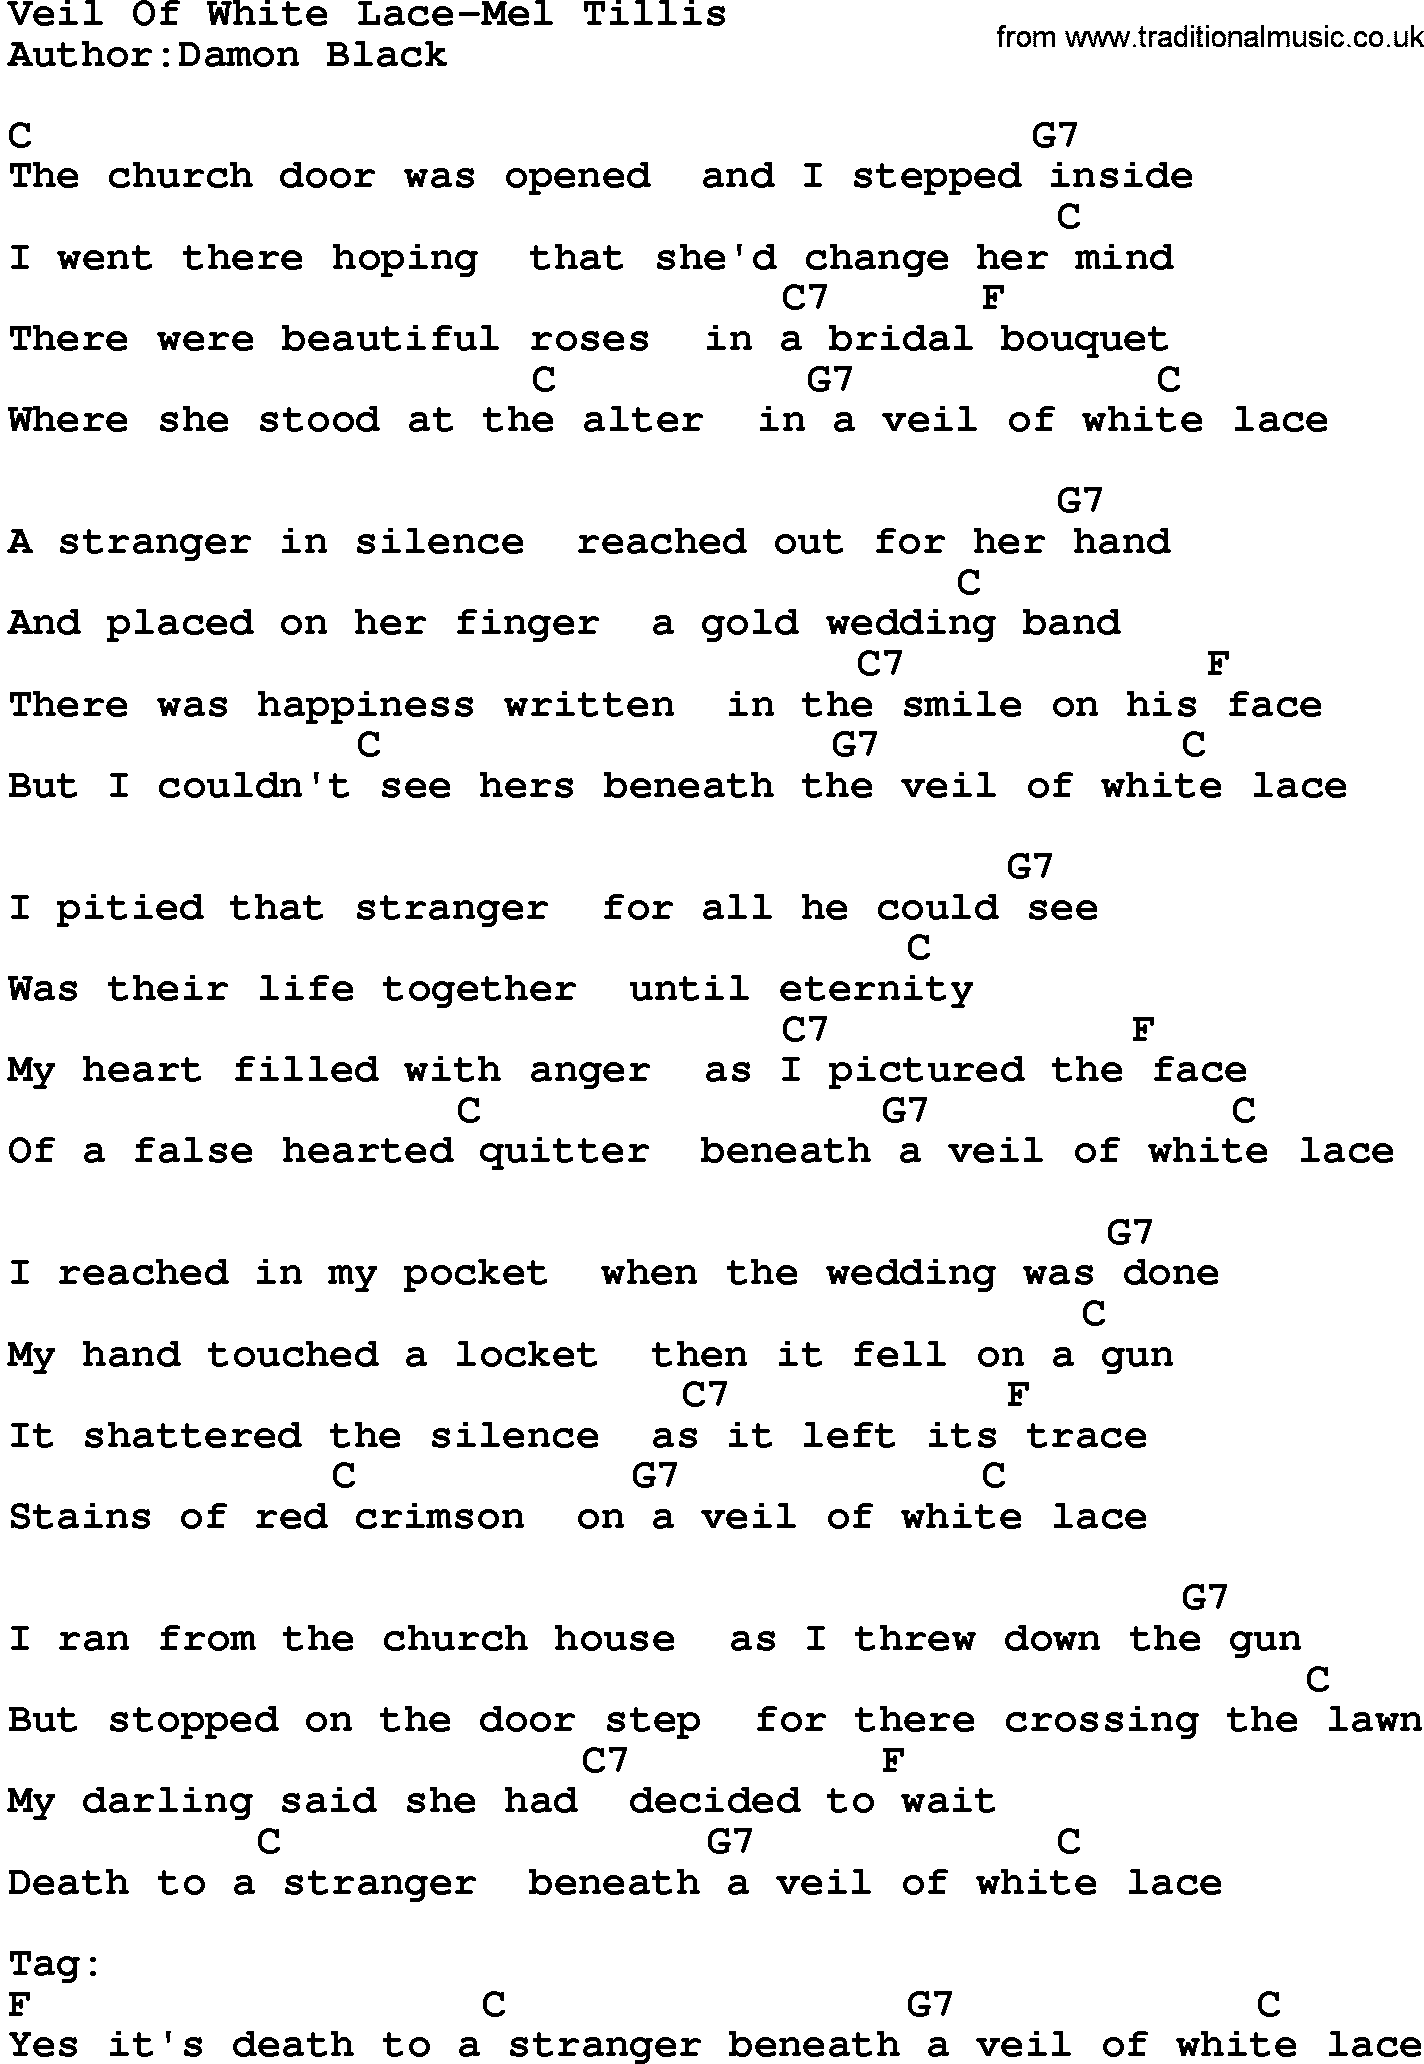 Country musicveil of white lace mel tillis lyrics and chords hexwebz Choice Image